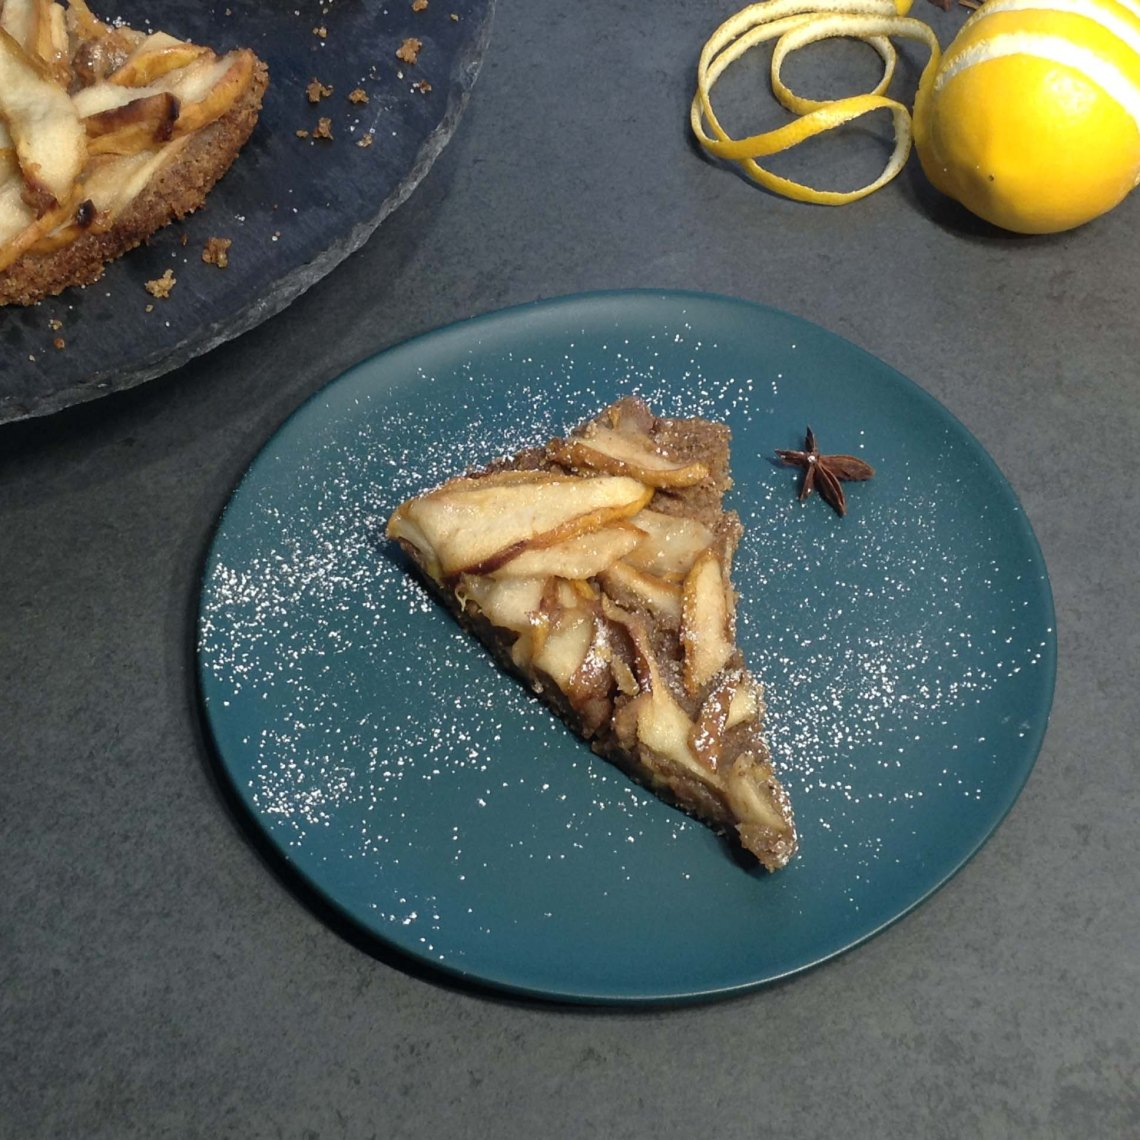 Slice of Pear Tart with Brown Butter Crust on a blue plate